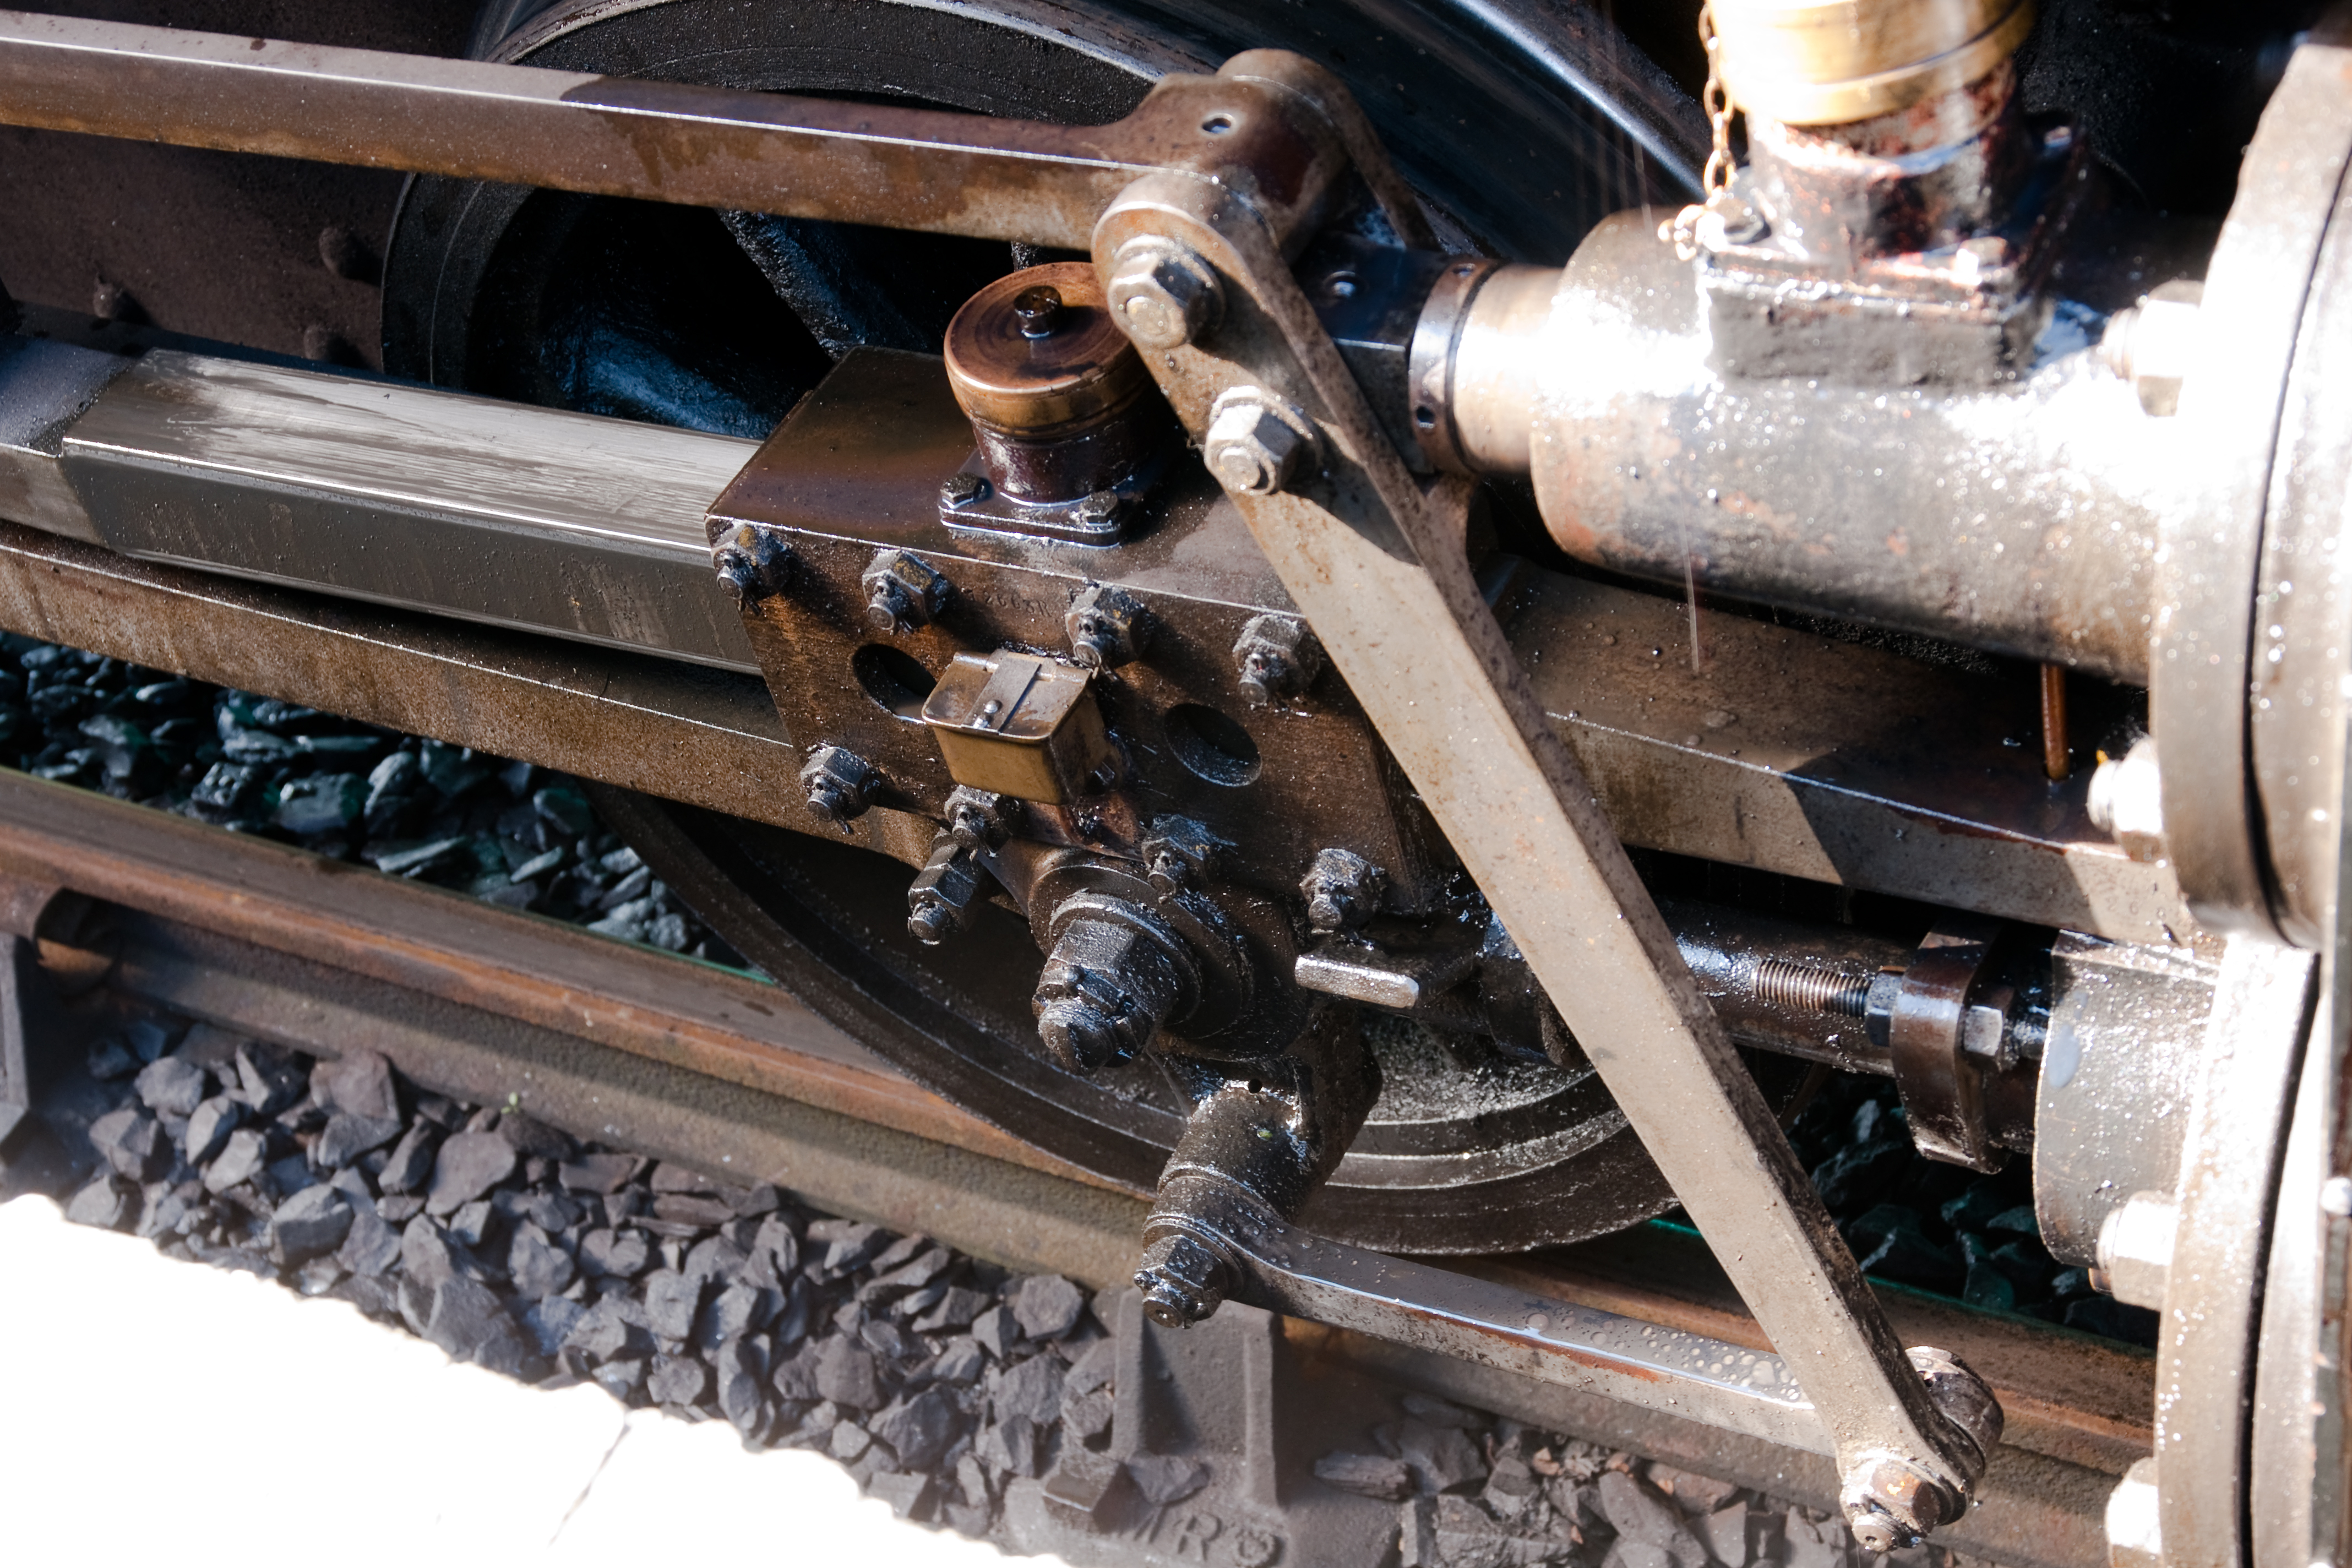 More of the drive train